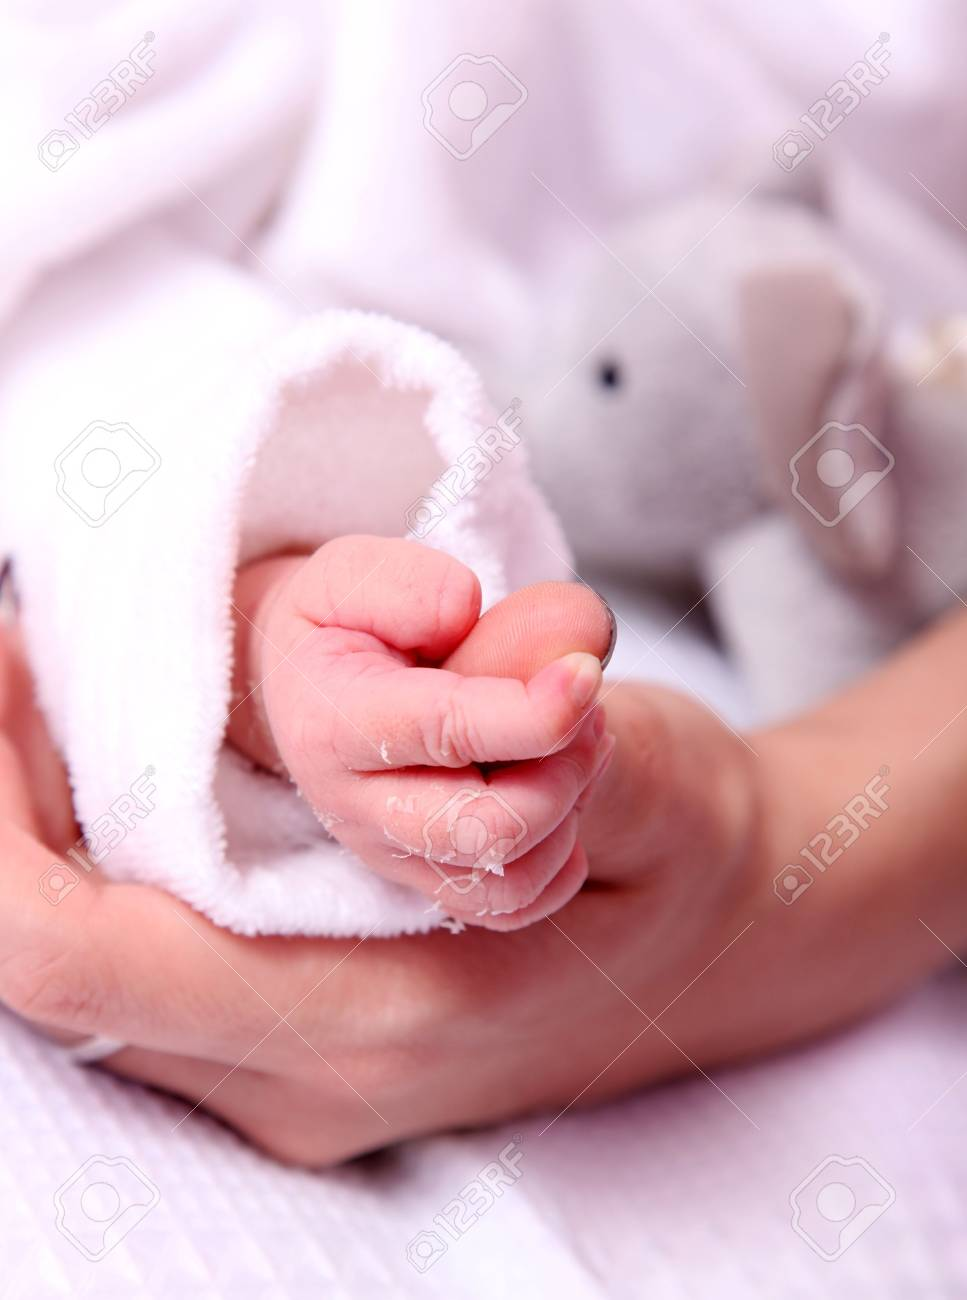 Baby and mother hands over white background Stock Photo - 5879805